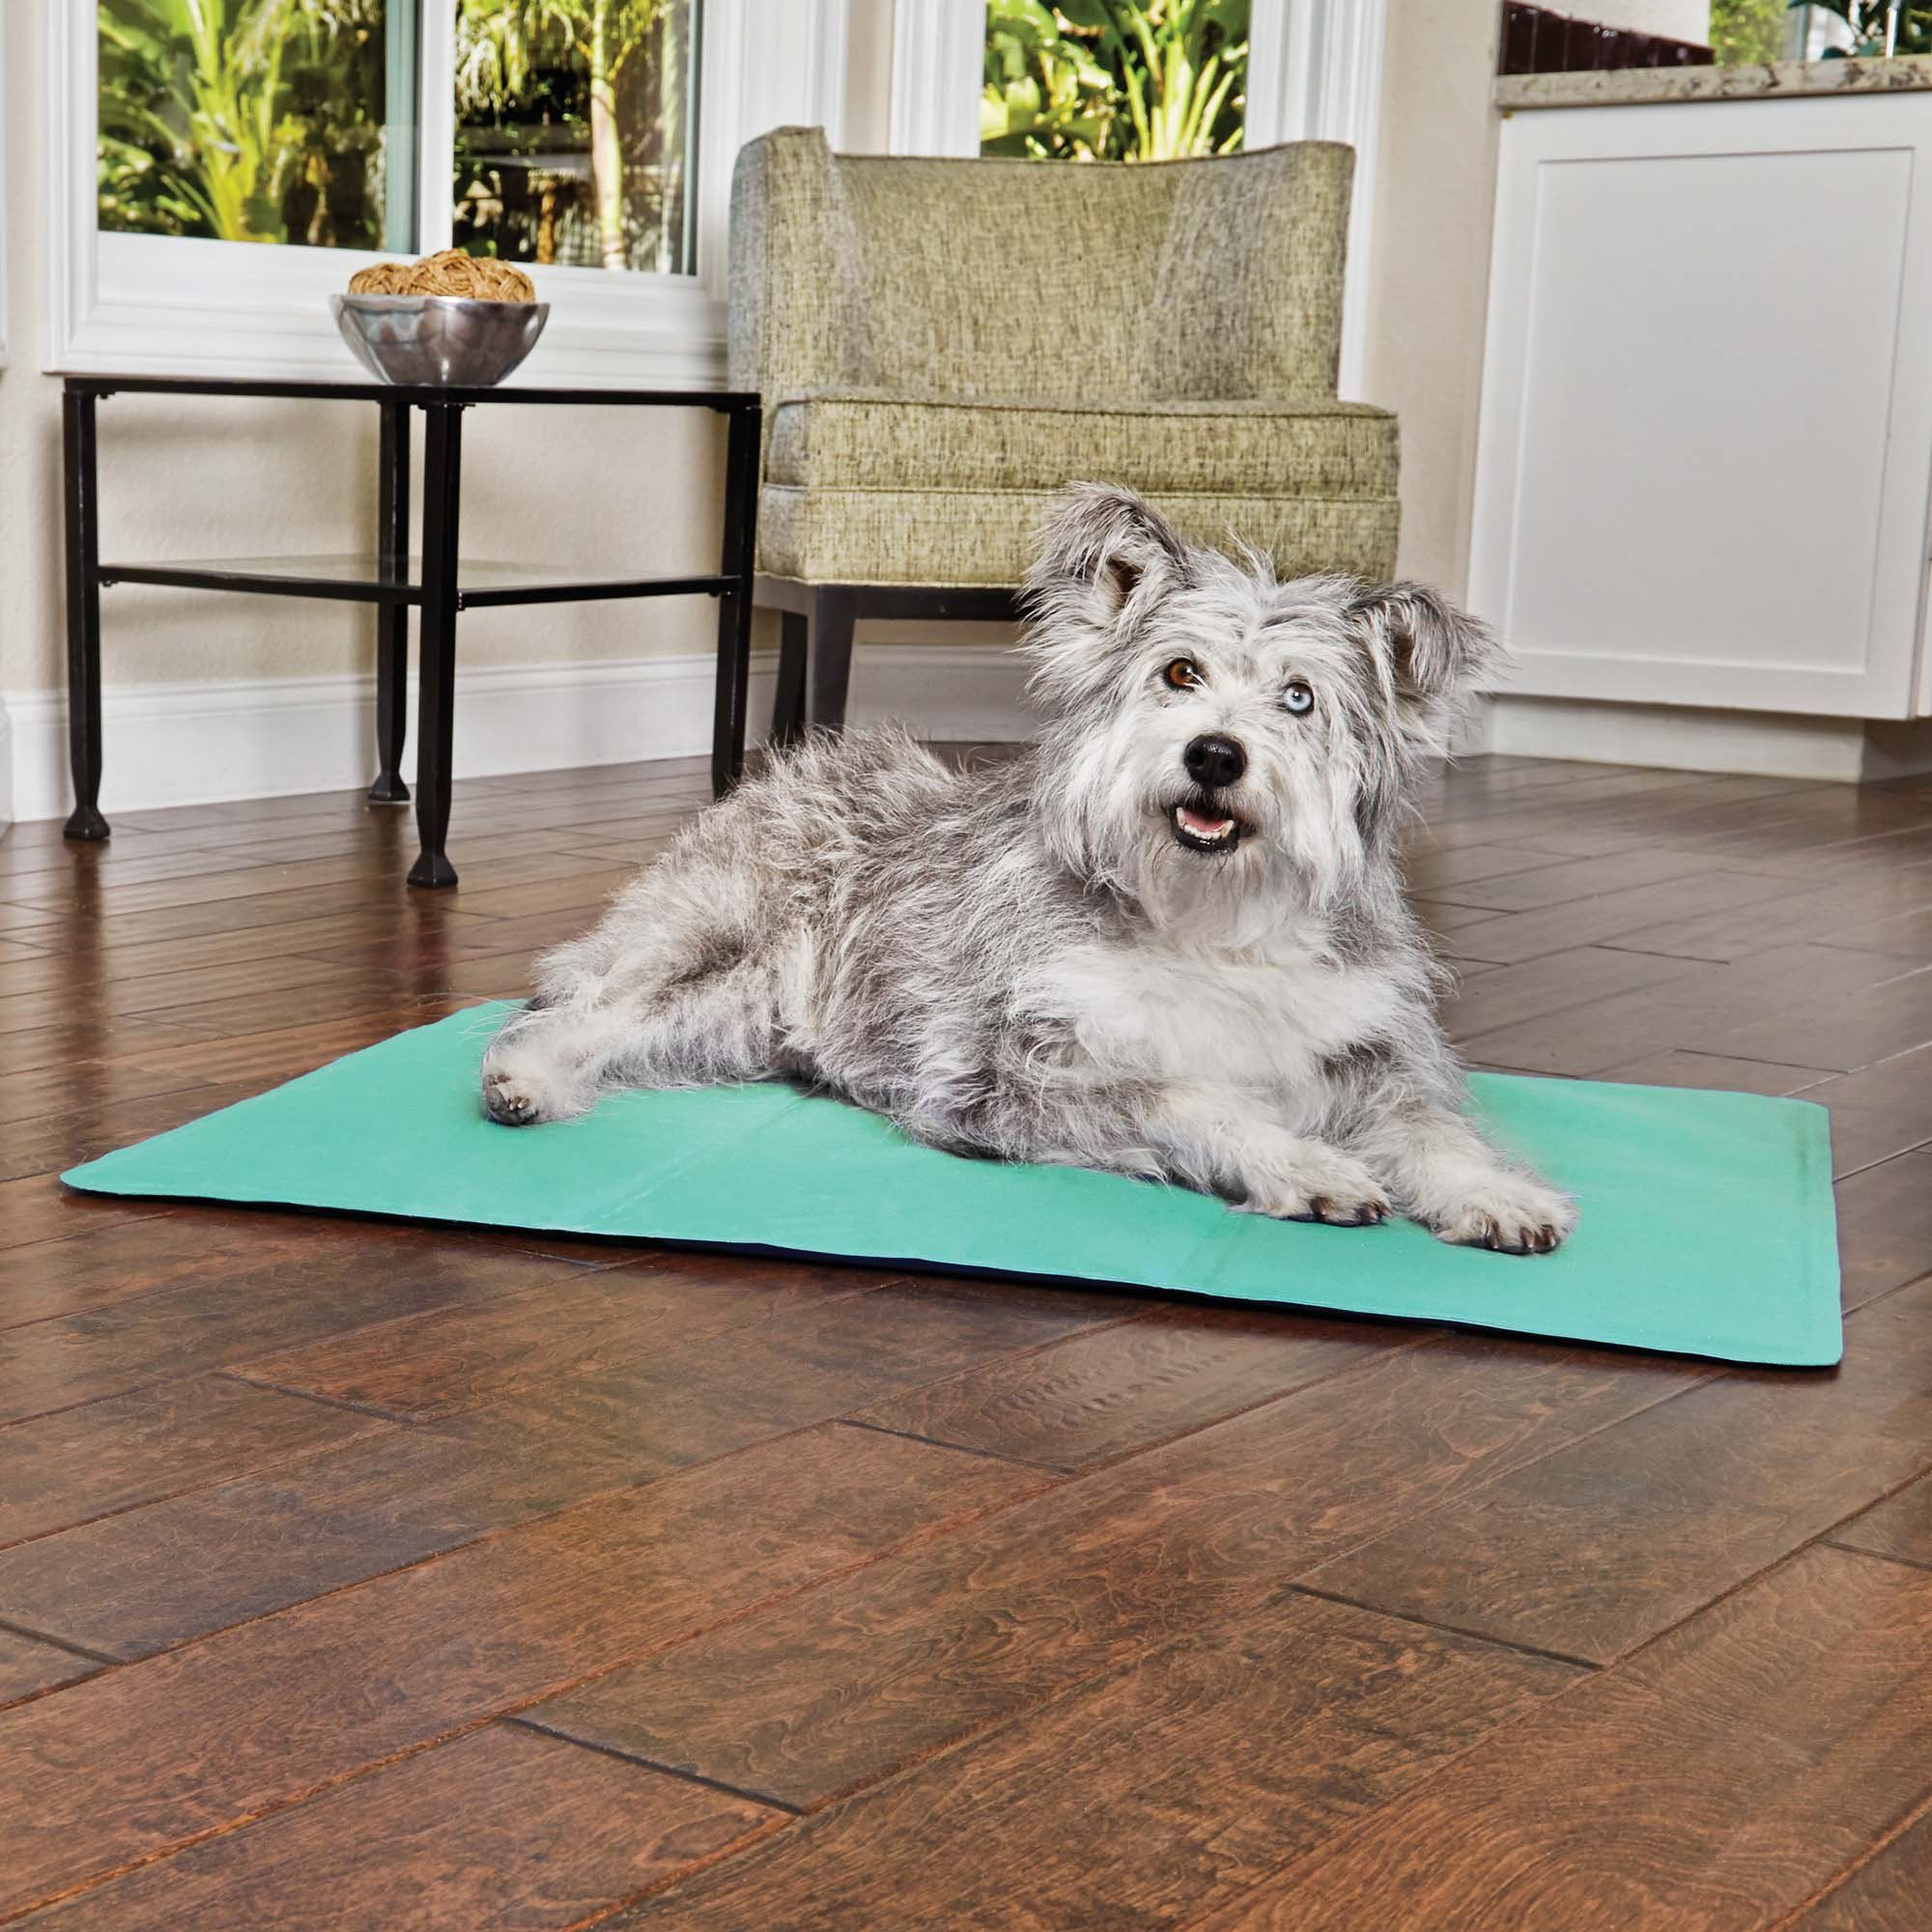 Help Your Pup Chill Out With The Good2go Cooling Gel Dog Mat This Refreshing Travel Dog Mat Keeps Your Canine Cool Without Need Dog Mat Dog Blanket Puppy Beds